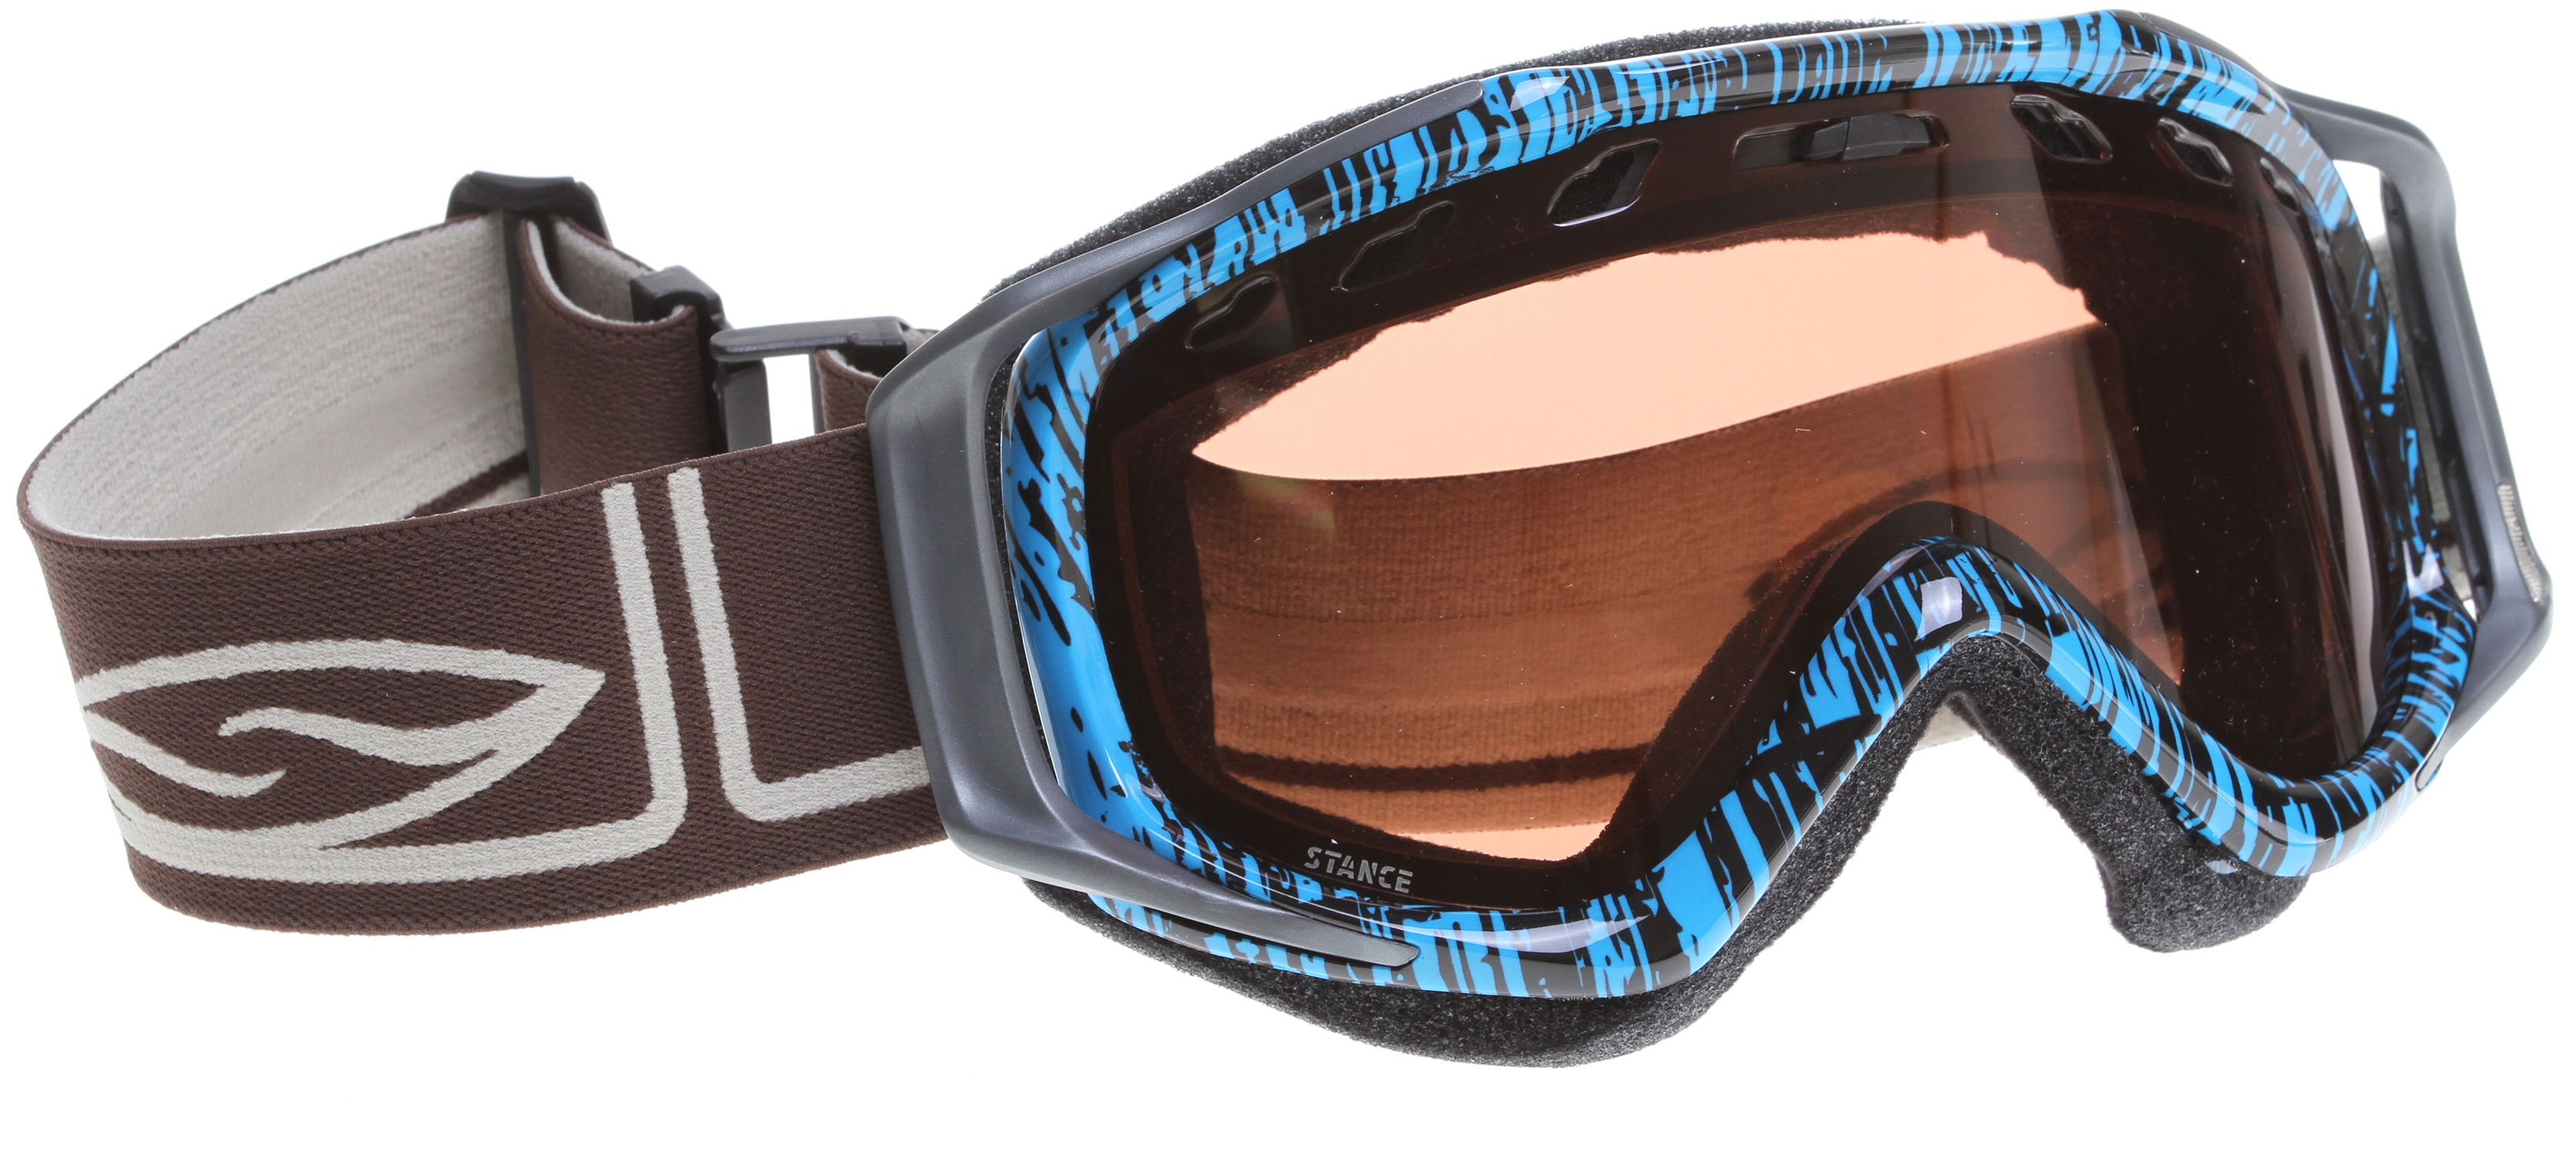 Snowboard The Stance is the direct result of our dedication to integrate performance and style. The Ergonomic Outrigger Positioning System and metal badge detailing bring refined style to the Regulator Series. Just under the surface, all Fuse devotees will be stoked to know that the Stance maintains the incredible fit and peripheral that made the Fuse so popular.Key Features of the Smith Stance Snowboard Goggles: Medium Fit and Helmet compatible Spherical and Cylindrical Carbonic-X lenses with TLT optics, Porex Filter and Fog-X anti-fog inner lens Articulating and Ergonomic outrigger positioning systems with Ultra-Wide, Silicone Backed Strap Includes Microfiber Goggle Bag Manufacturer's Lifetime Warranty 35% Visual Light Transmission (VLT) Conditions: Low/Medium/Bright Light Proprietary universal lens tint designed to reduce eye fatigue while enhancing contrast and depth perception in all conditions. A versatile lens tint designed to be used all season long. - $42.36